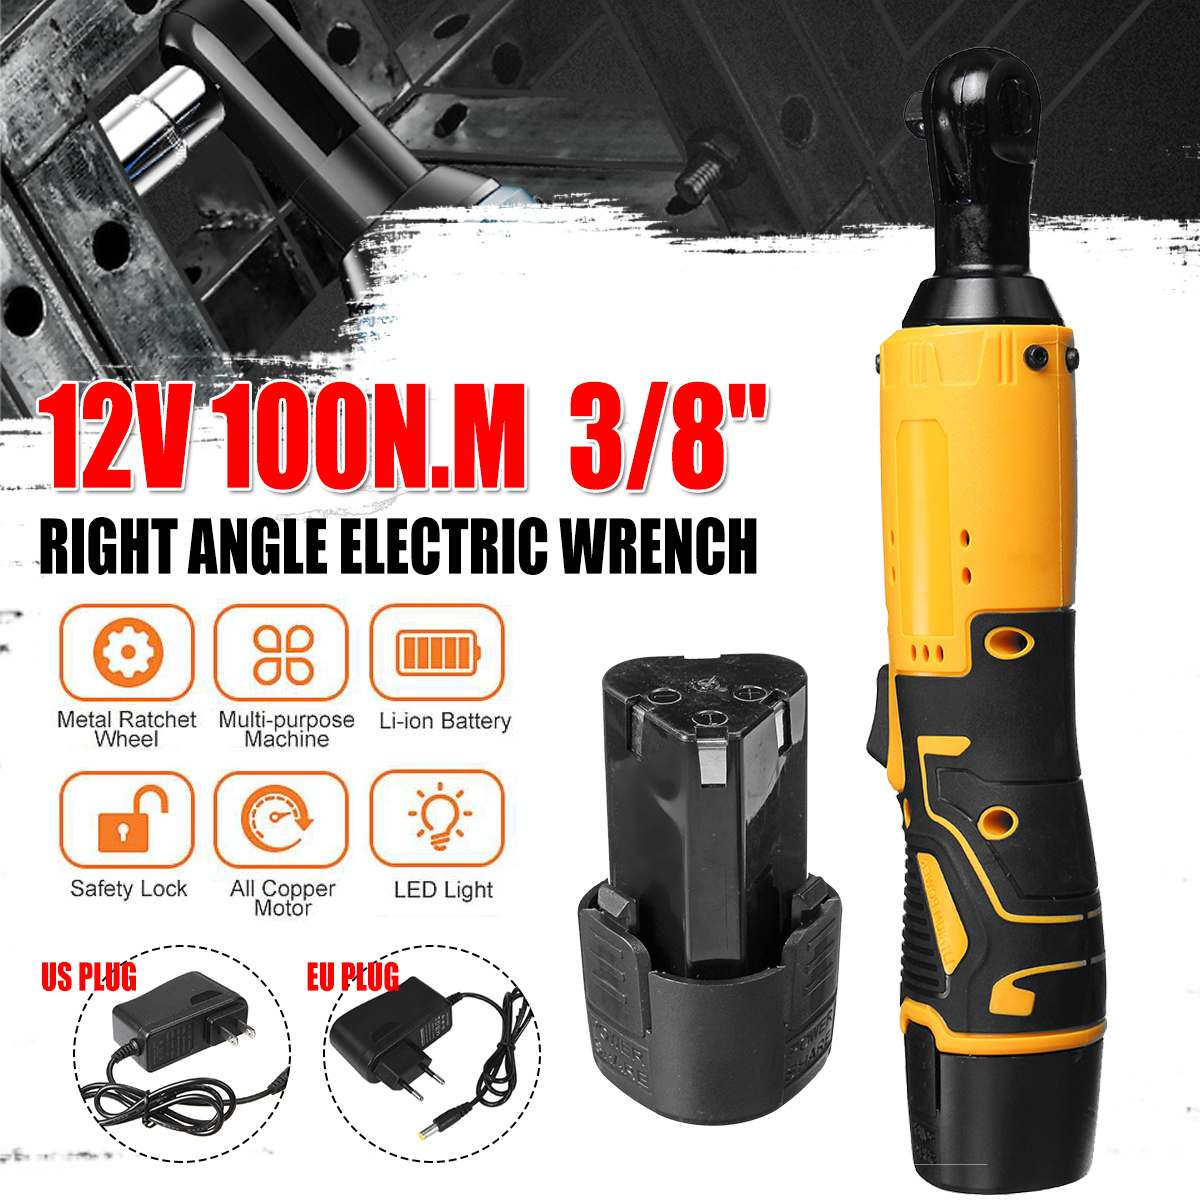 3 8   12V 100Nm Powerful Electric Cordless Wrench Ratchet Right Angle Wrench Tool Set With Rechargeable Battery